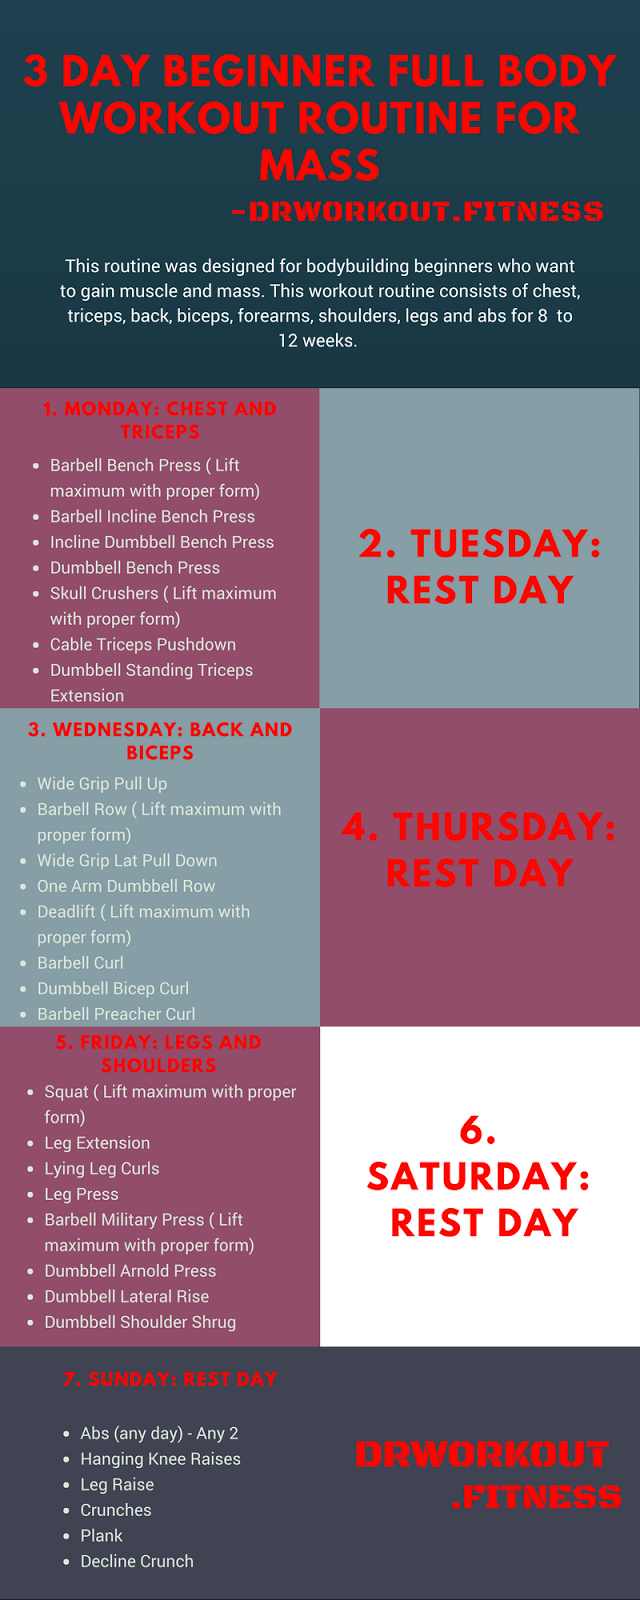 3 Day Beginner Full Body Workout Routine For Mass